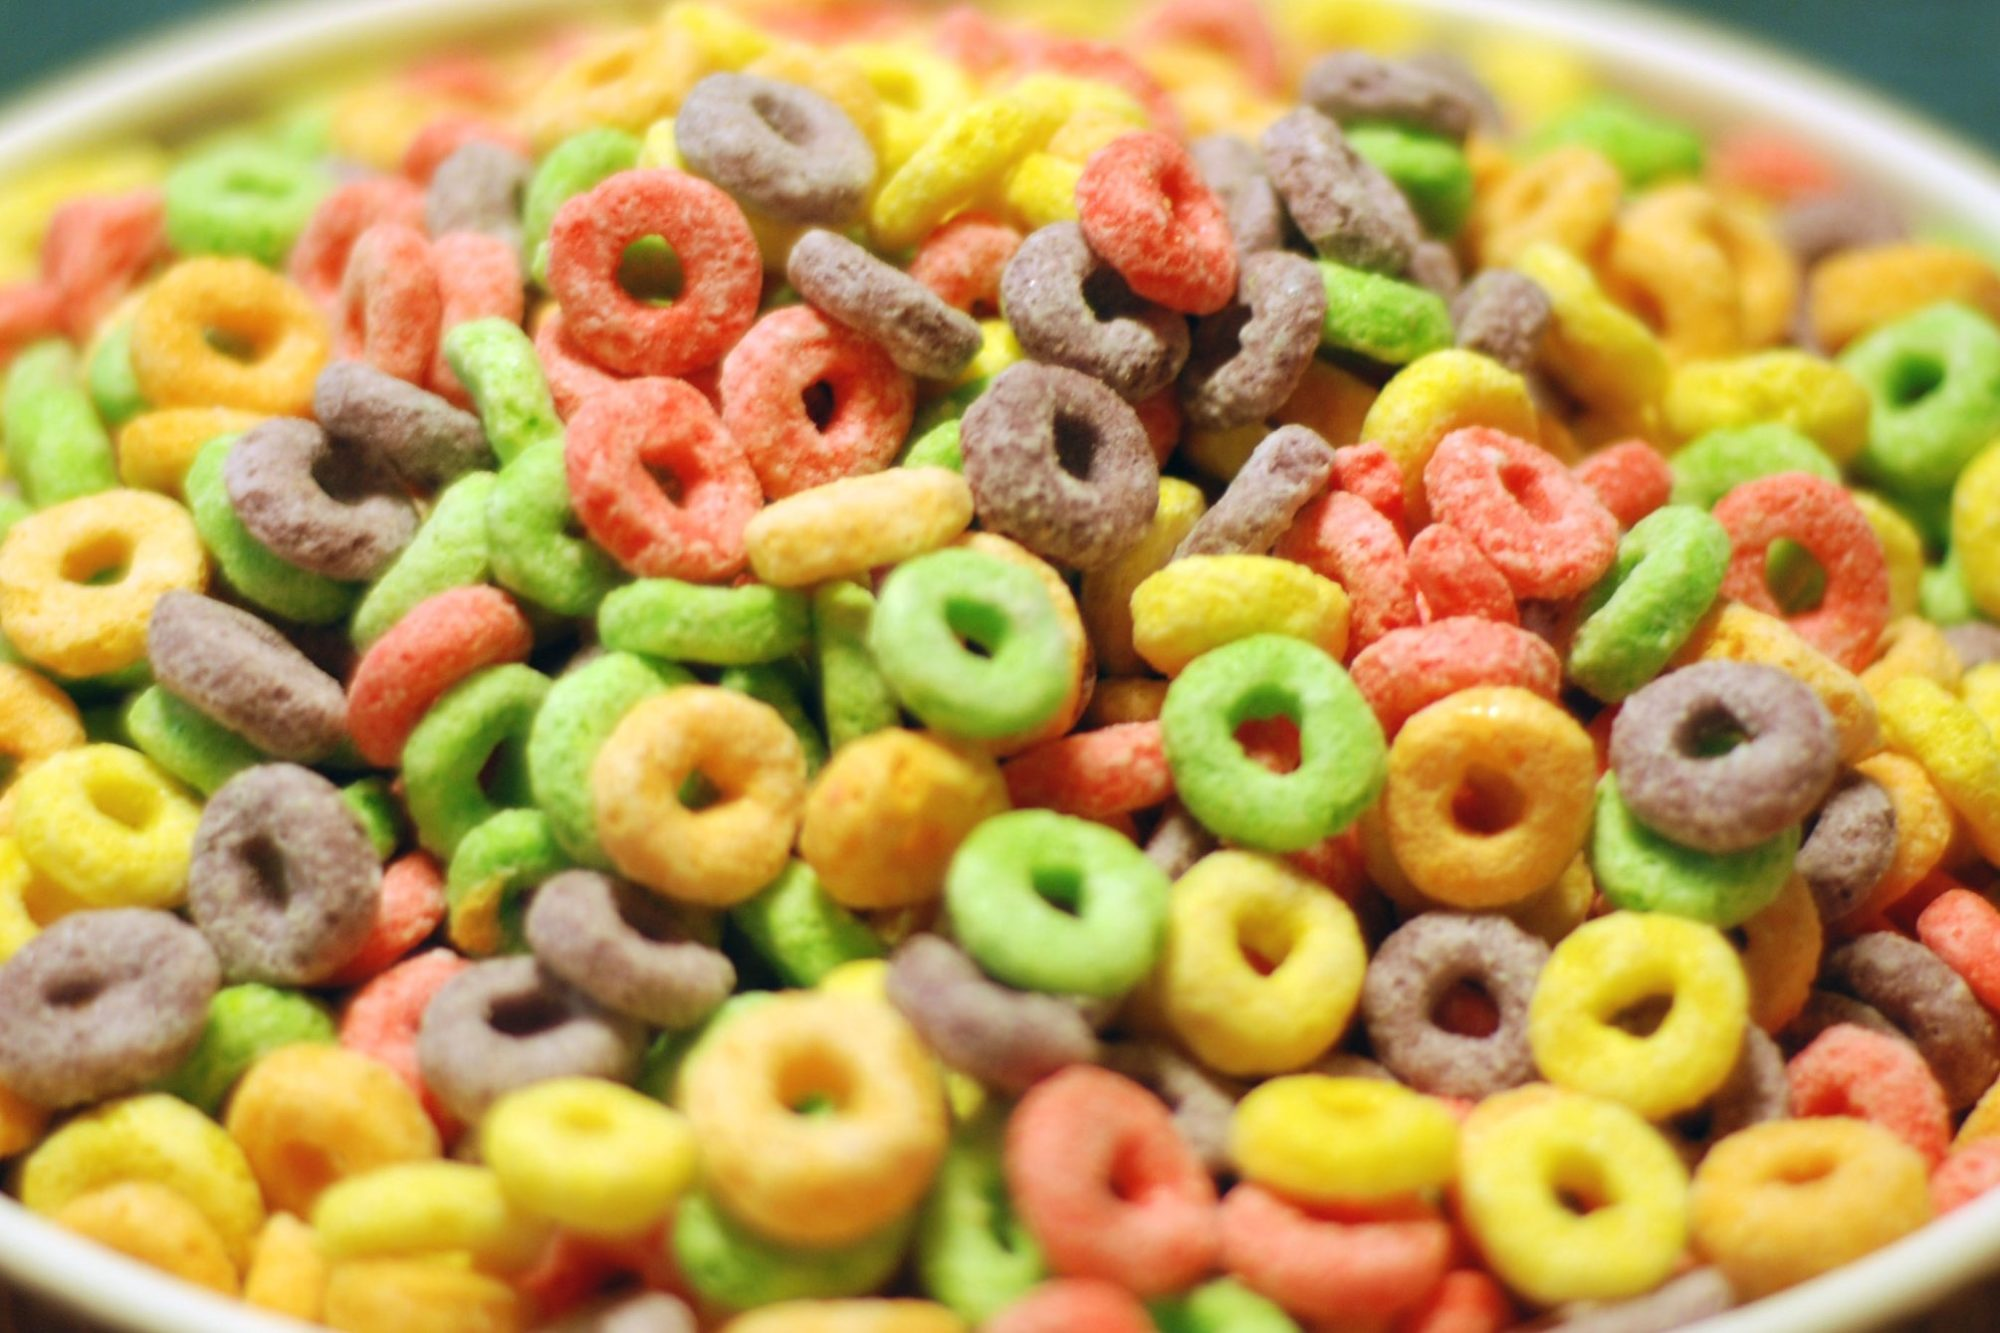 are fruit loops vegan? » vegan food lover